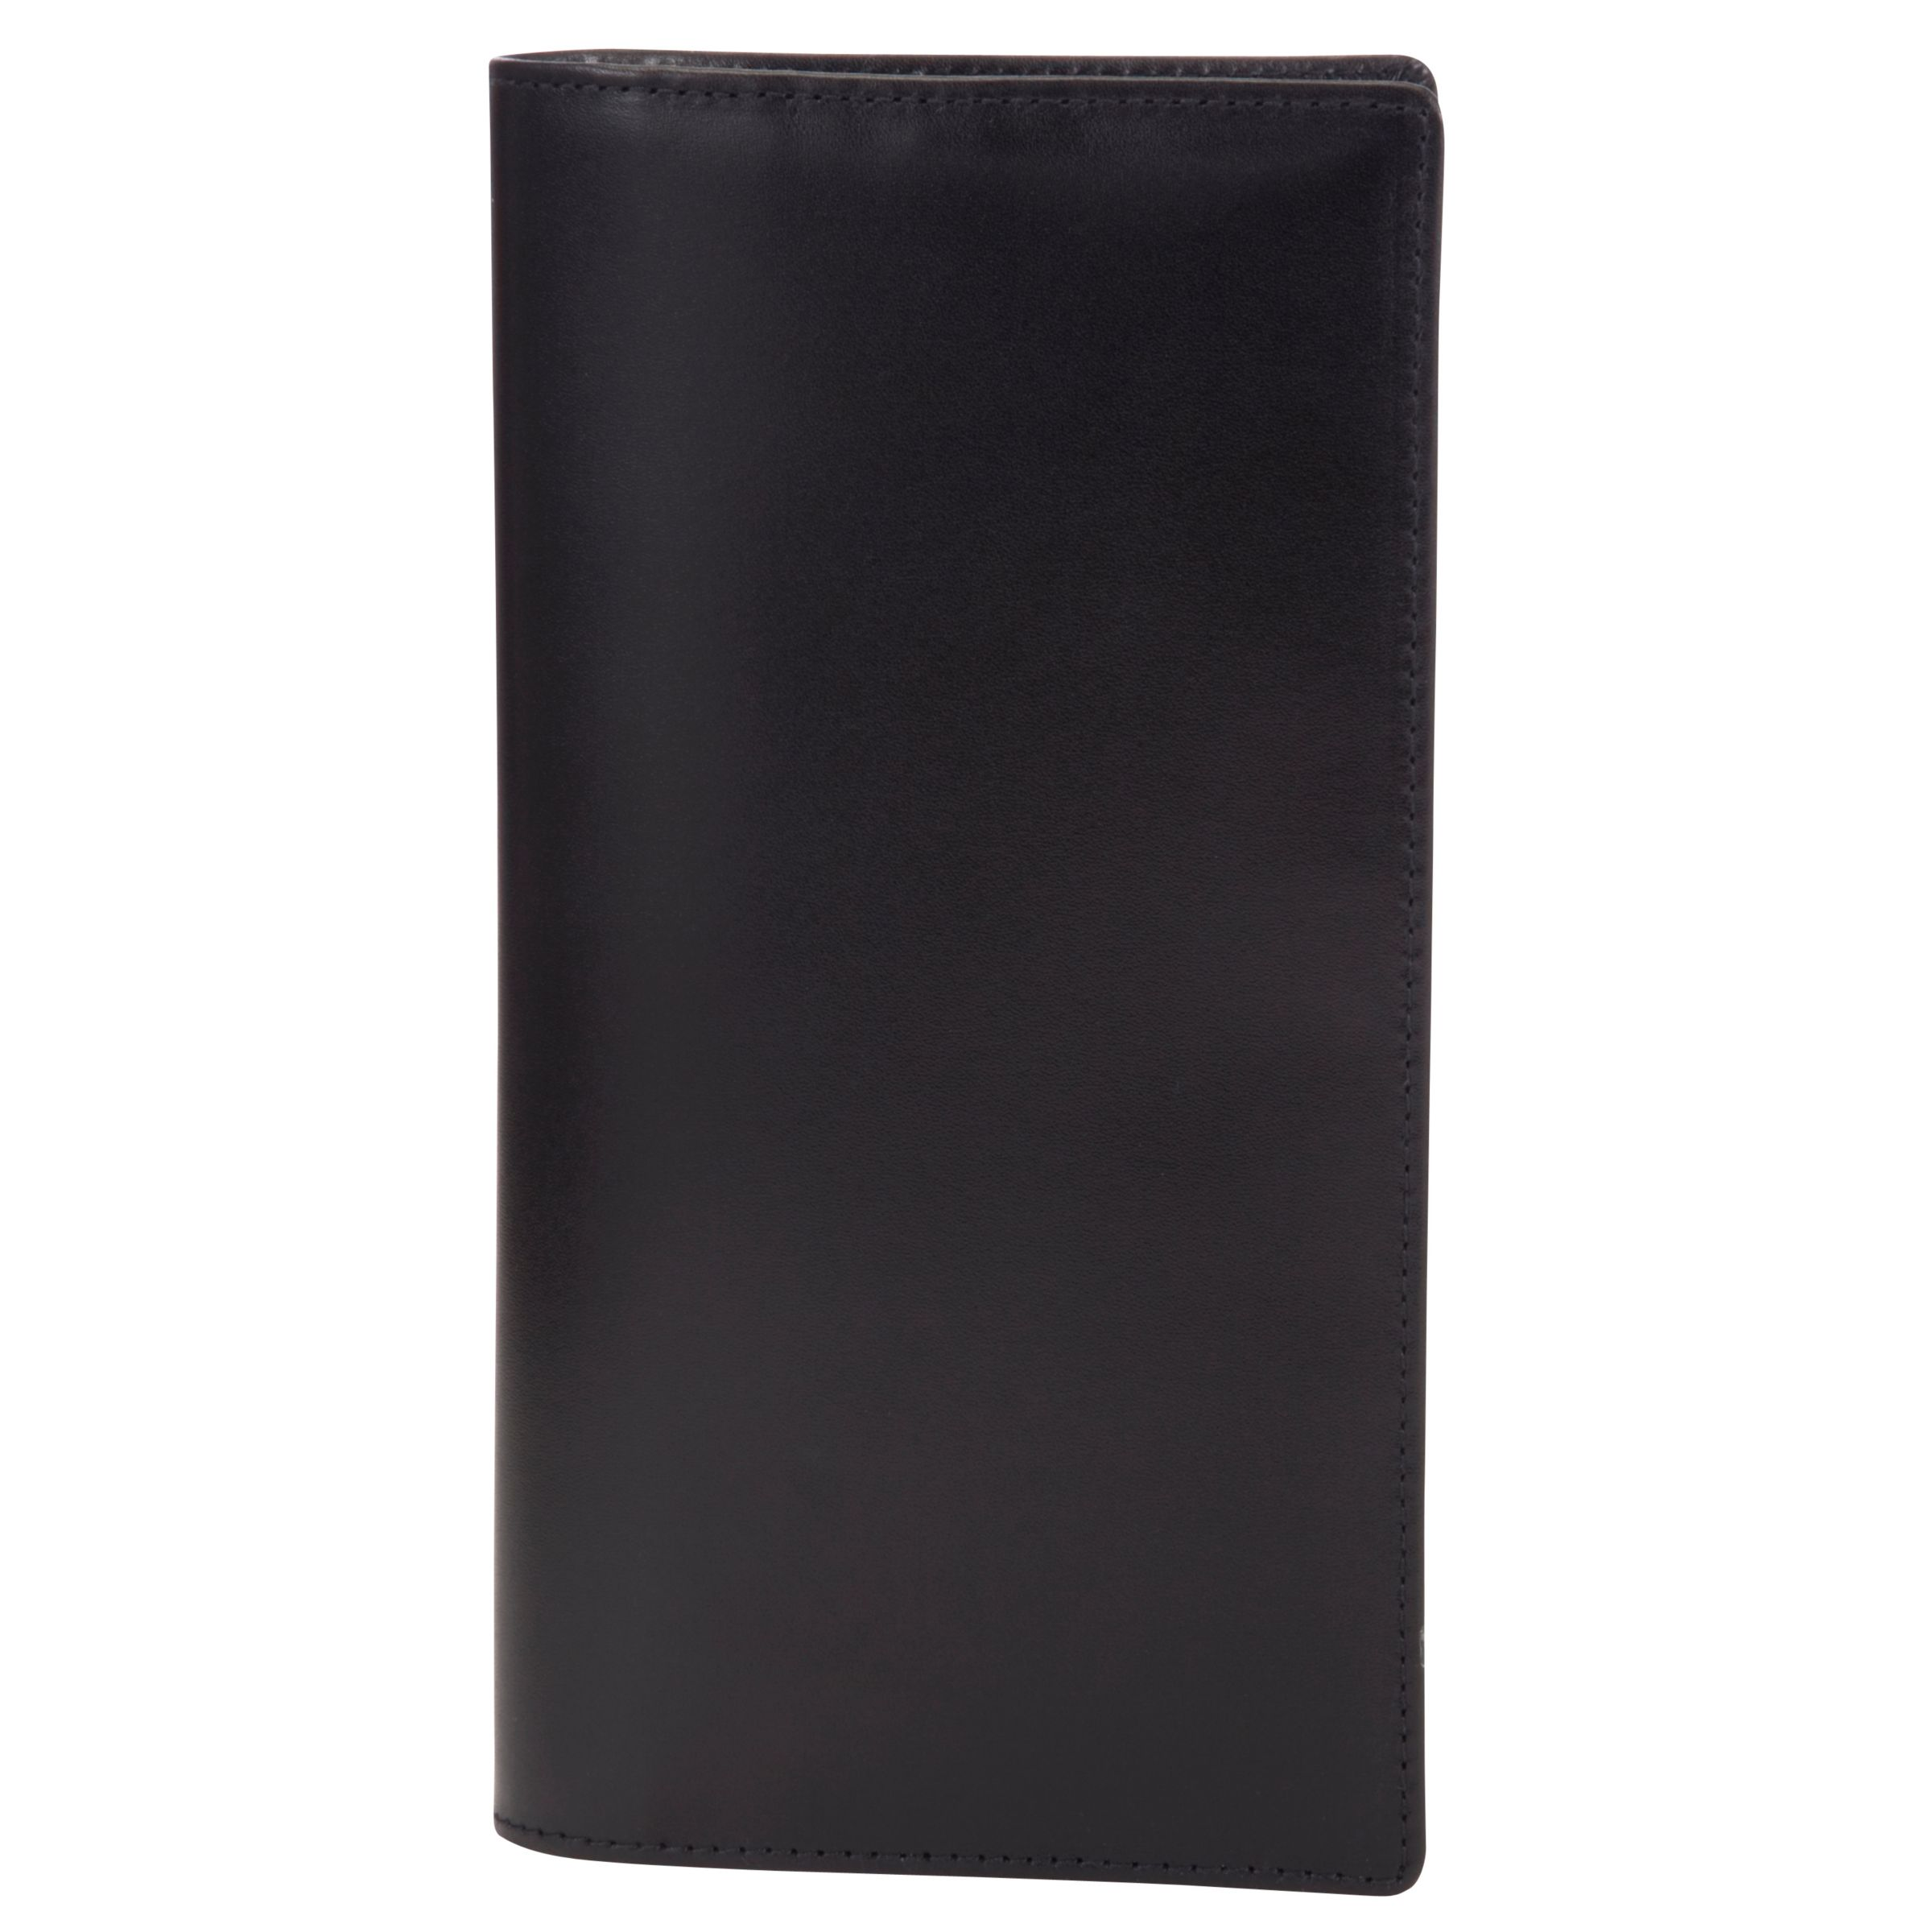 Launer Launer Made in England Calf Leather Wallet, Black